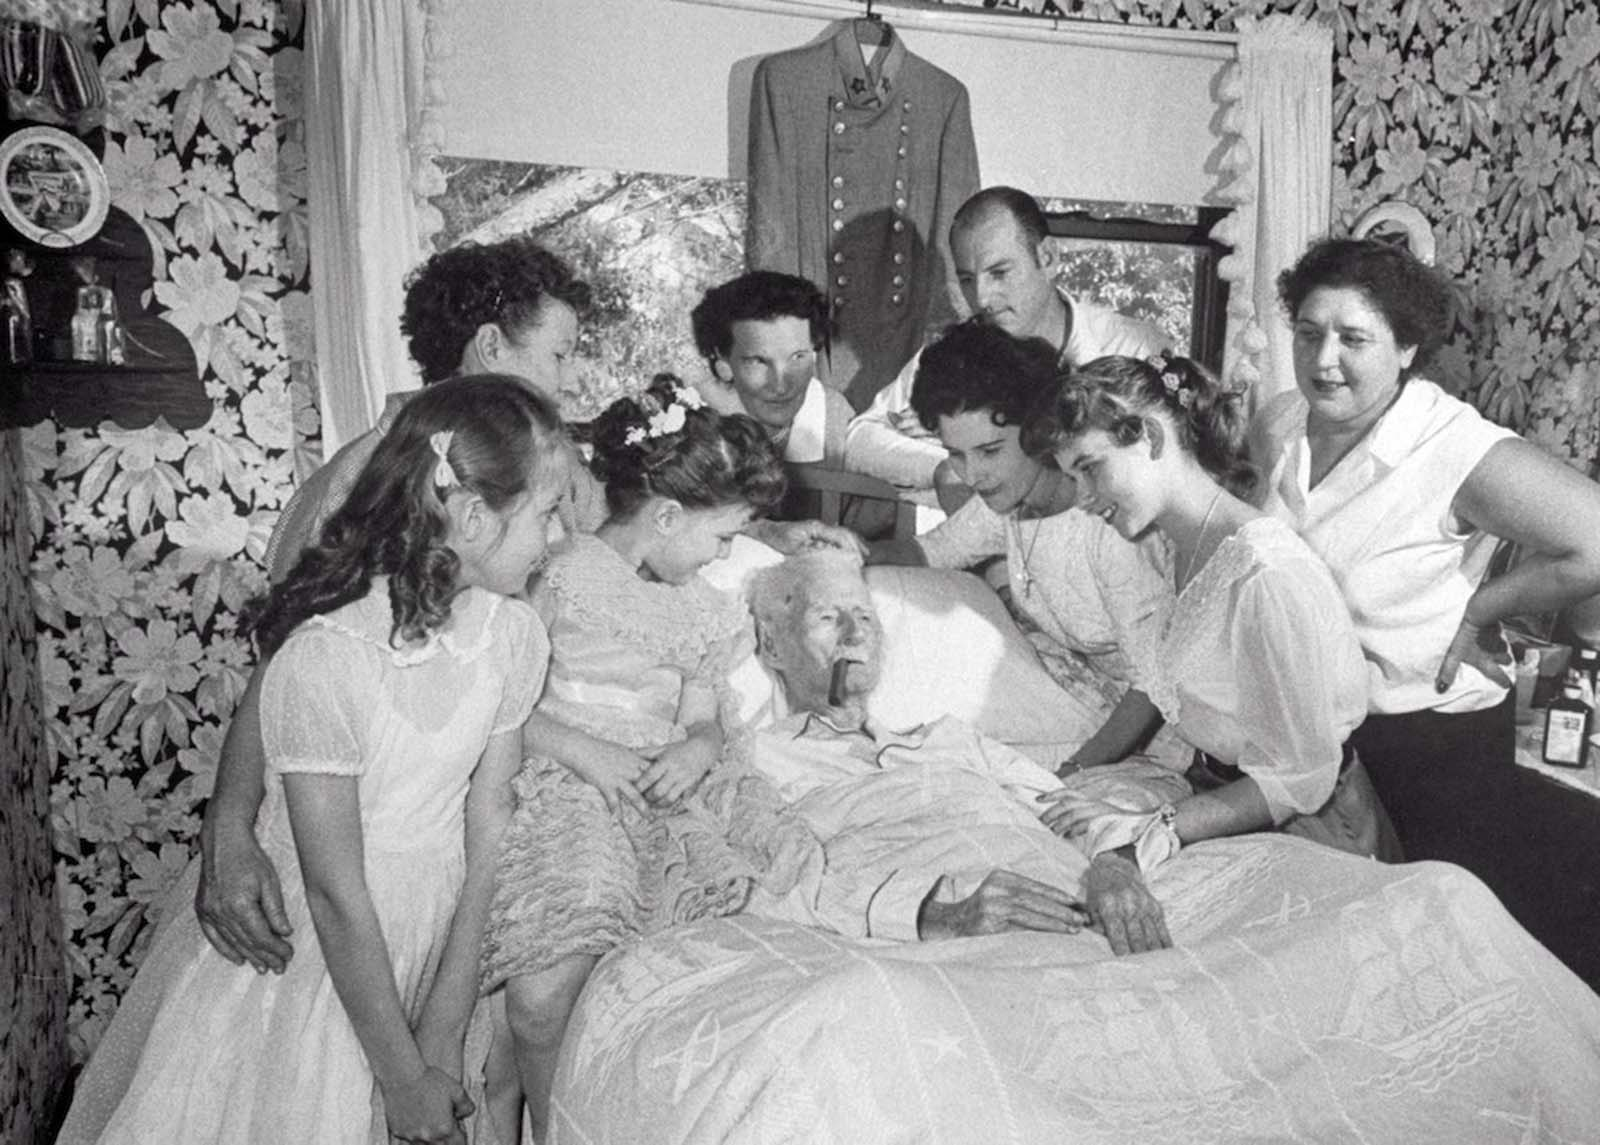 Walter Williams lying in bed with cigar, surrounded by family and friends. 1959.